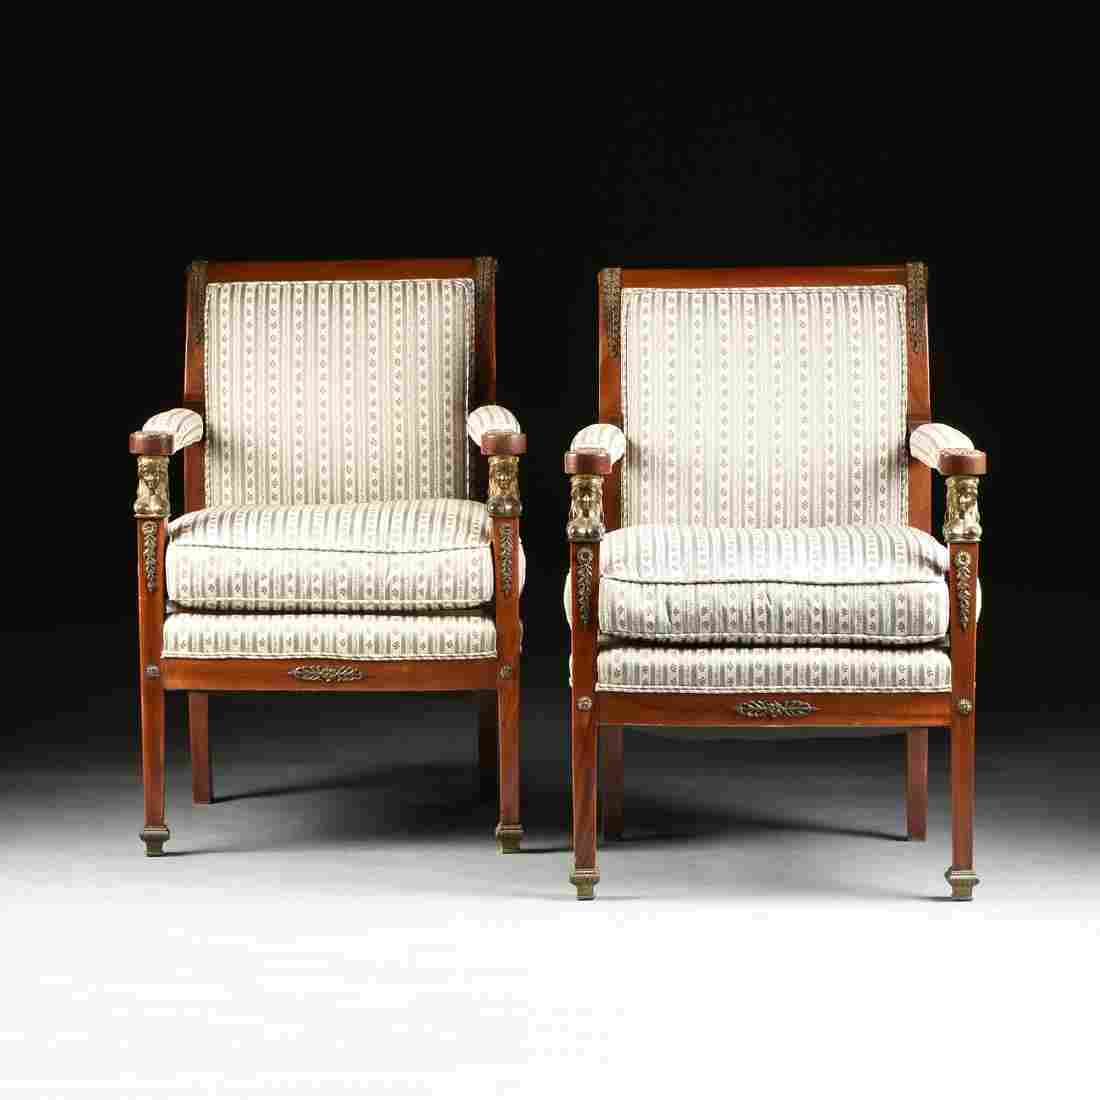 A PAIR OF ITALIAN NEOCLASSICAL STYLE ORMOLU MOUNTED